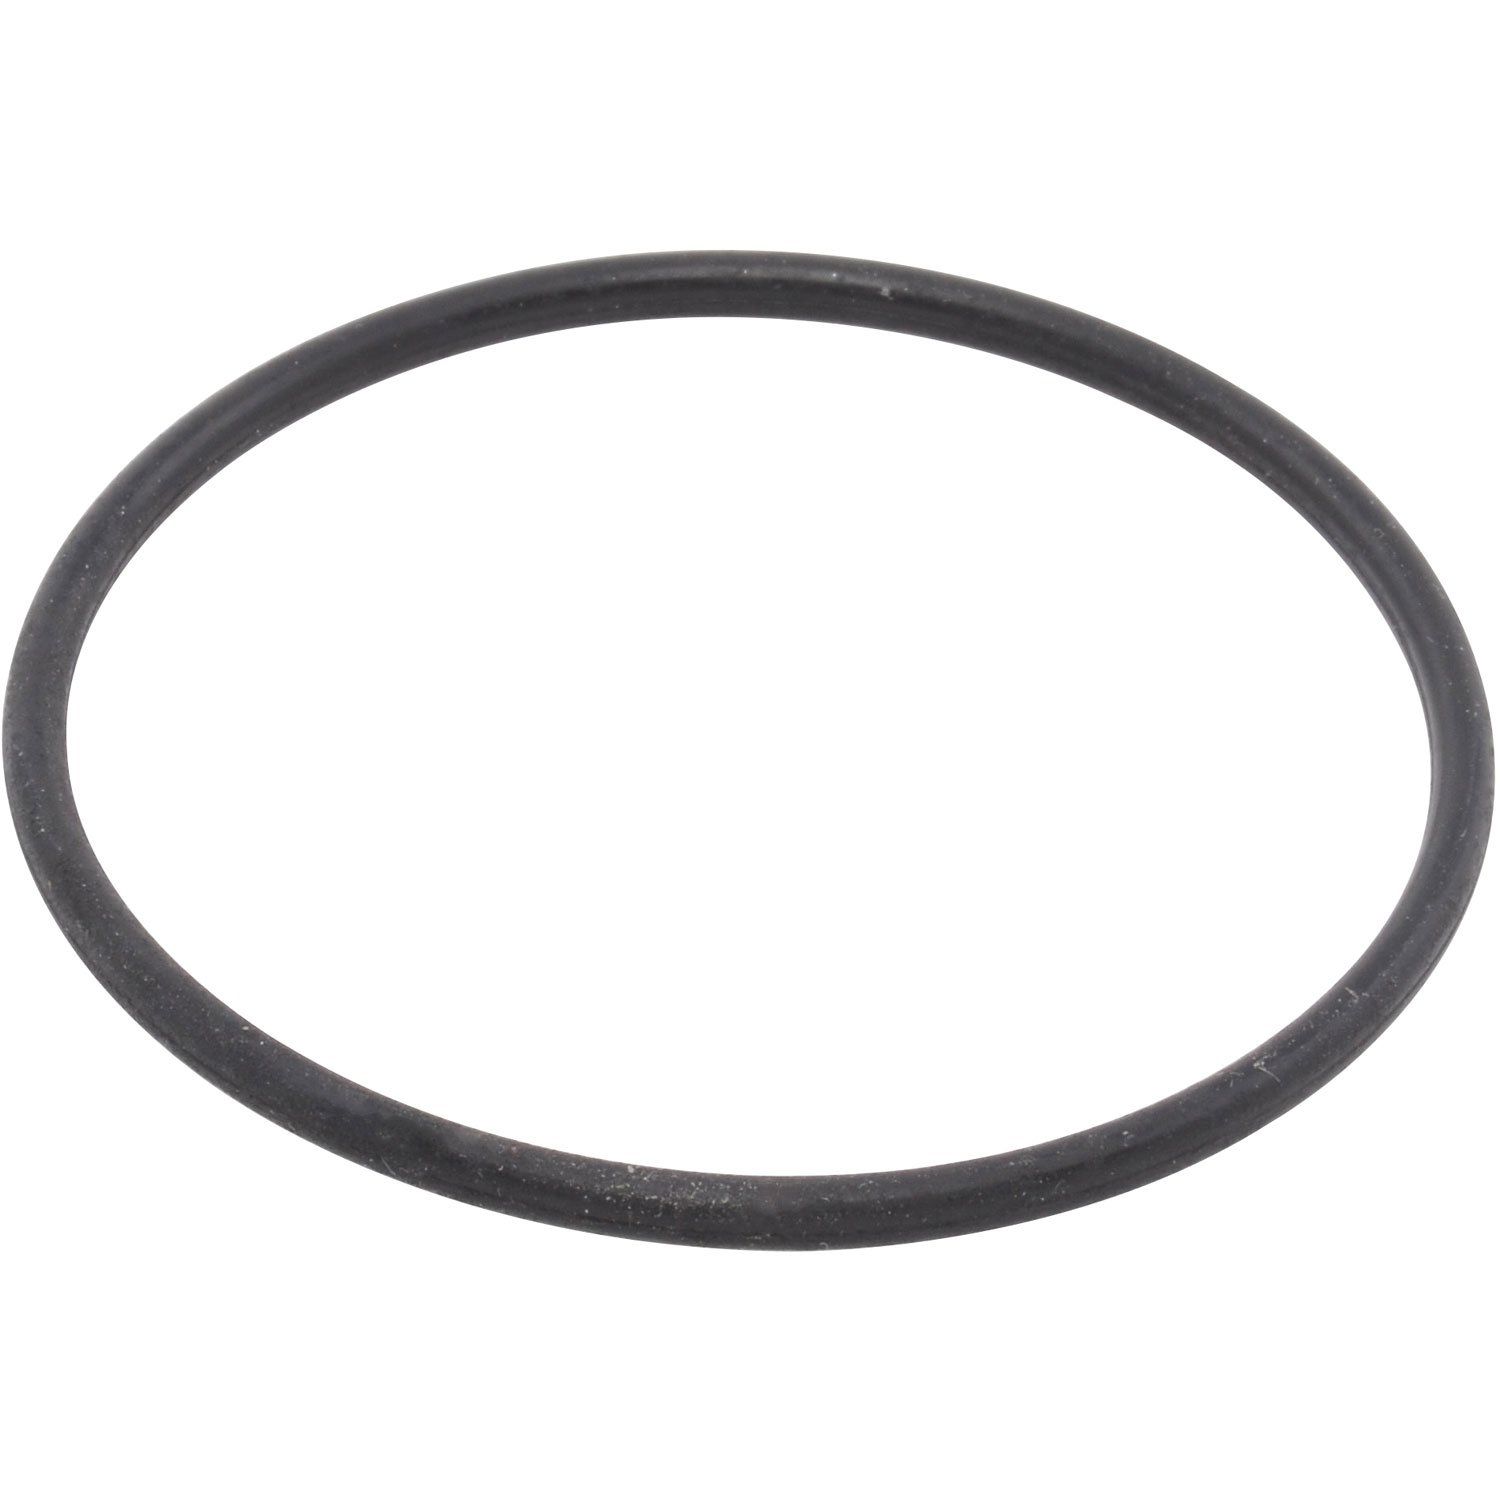 Racing Power R9468 Water Neck O-Ring